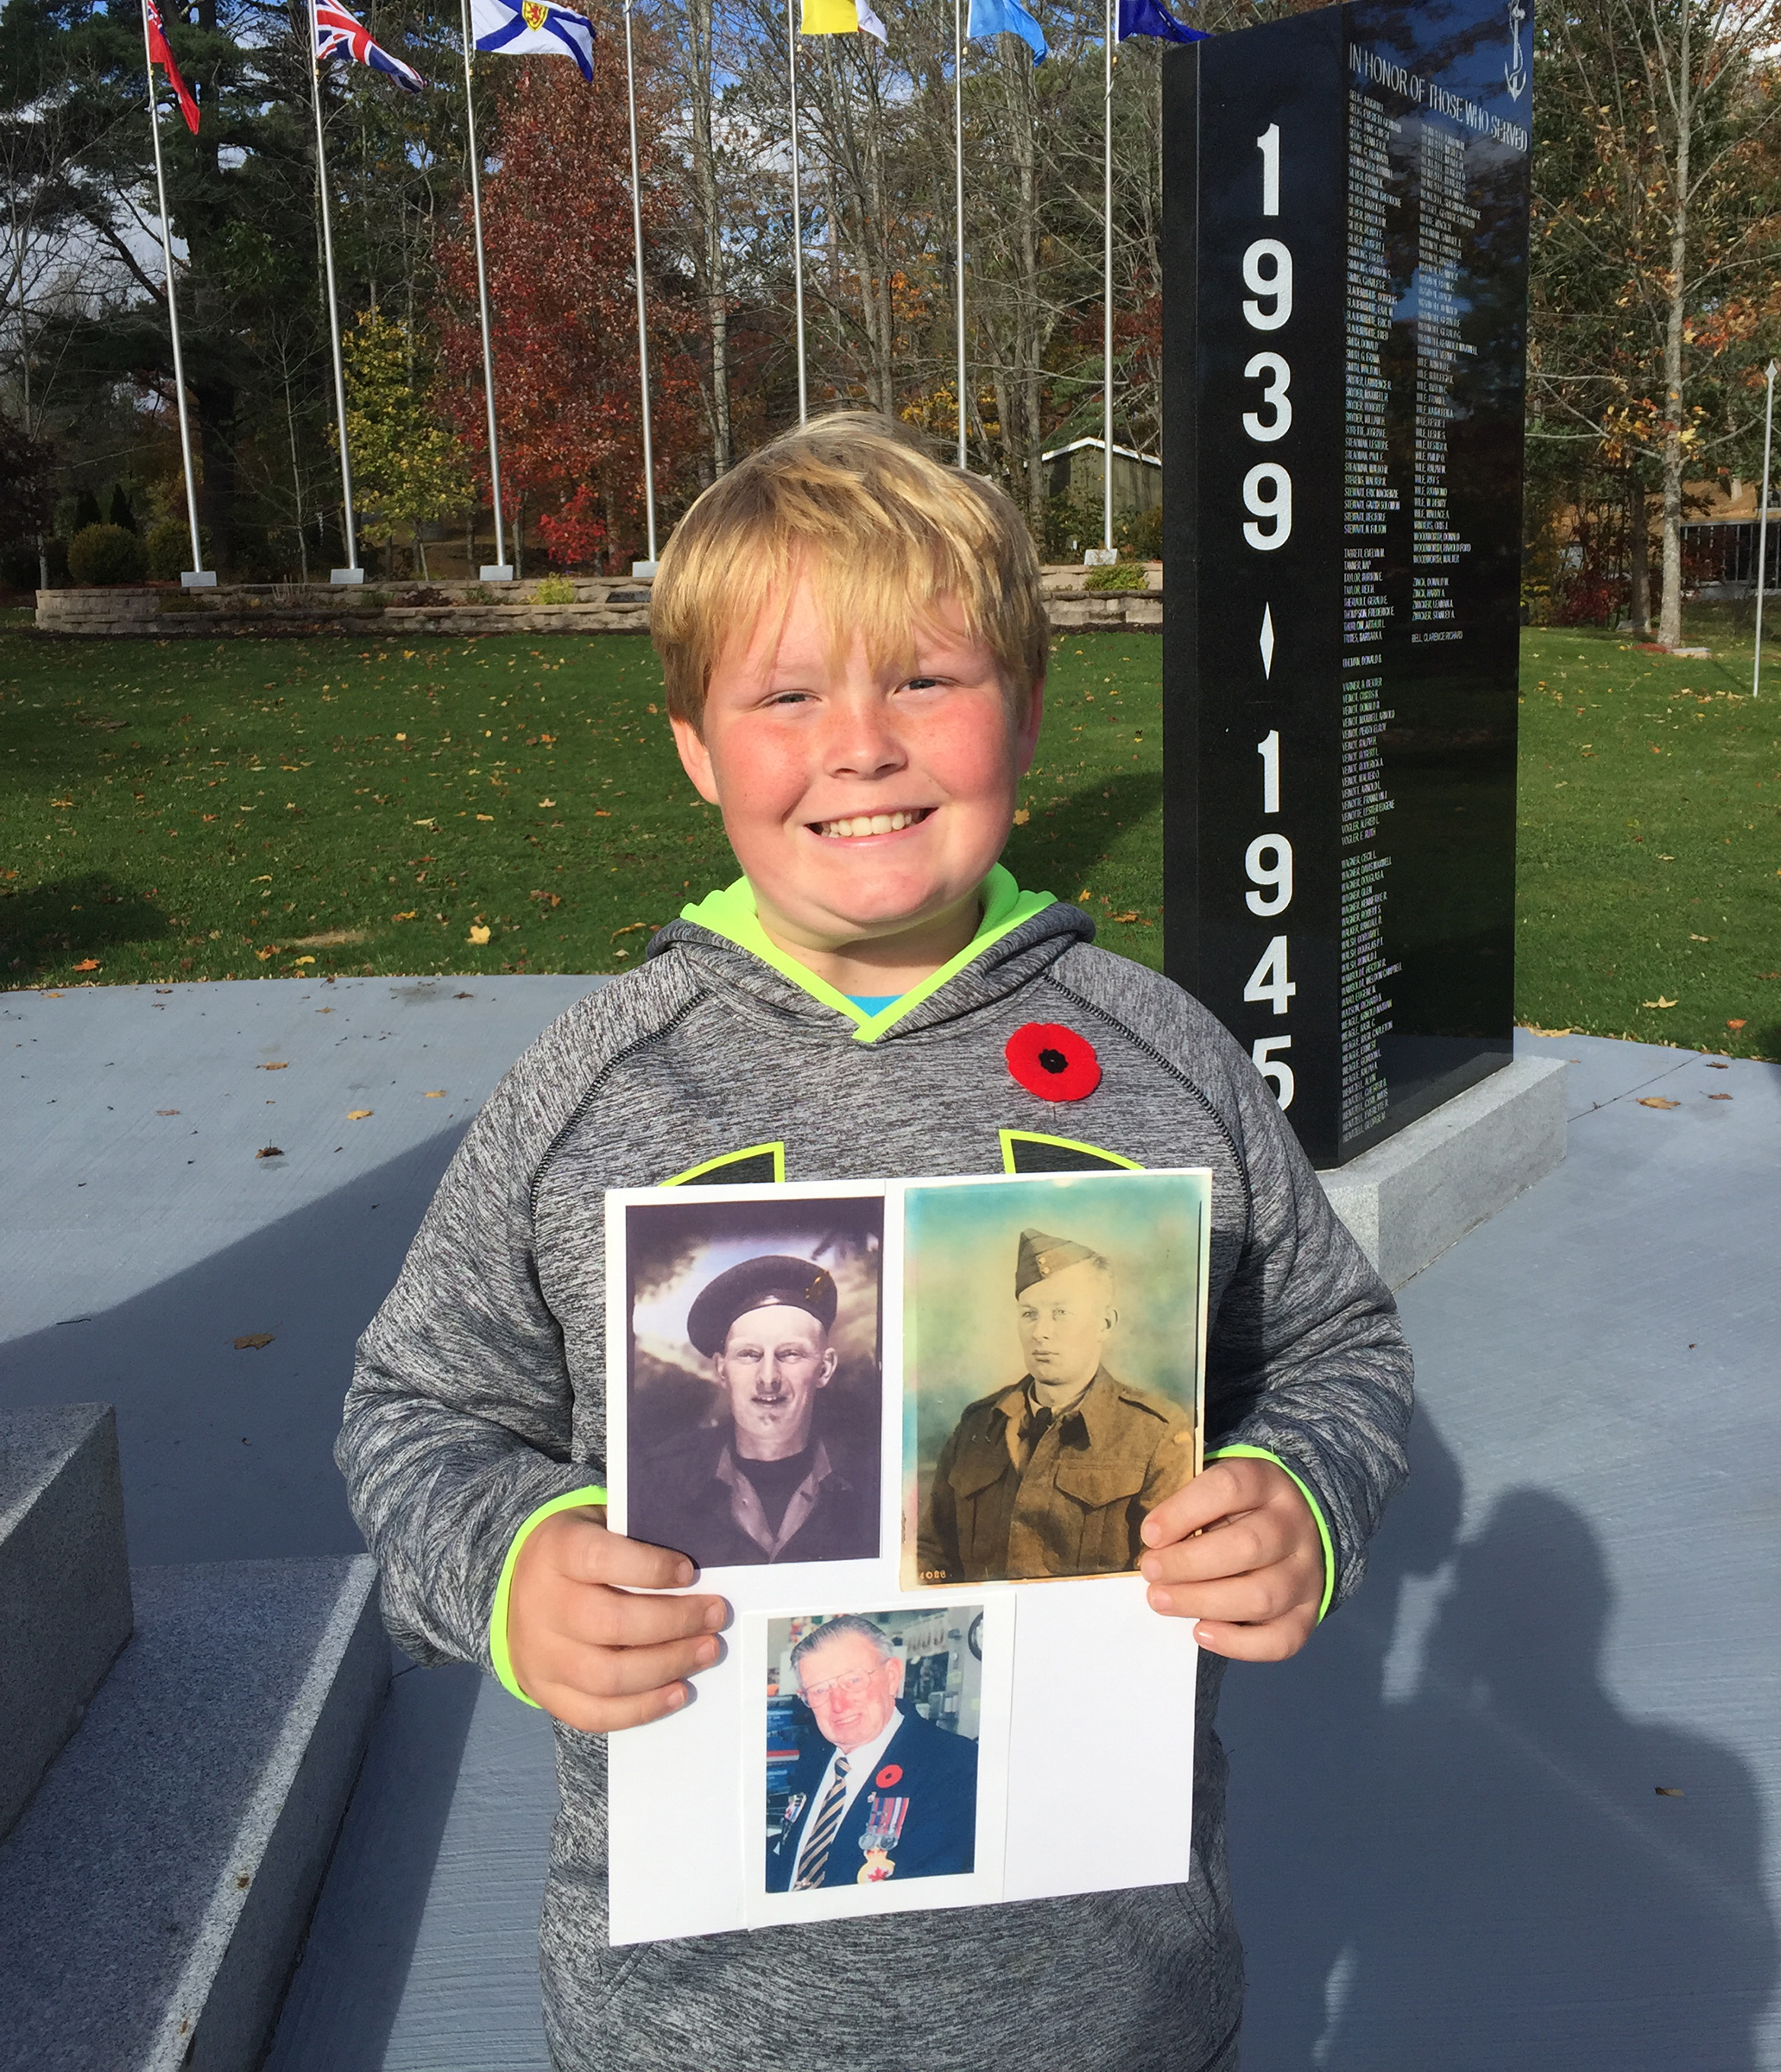 A child stands in front of a black granite cenotaph, holding a poster with three photos affixed to it.